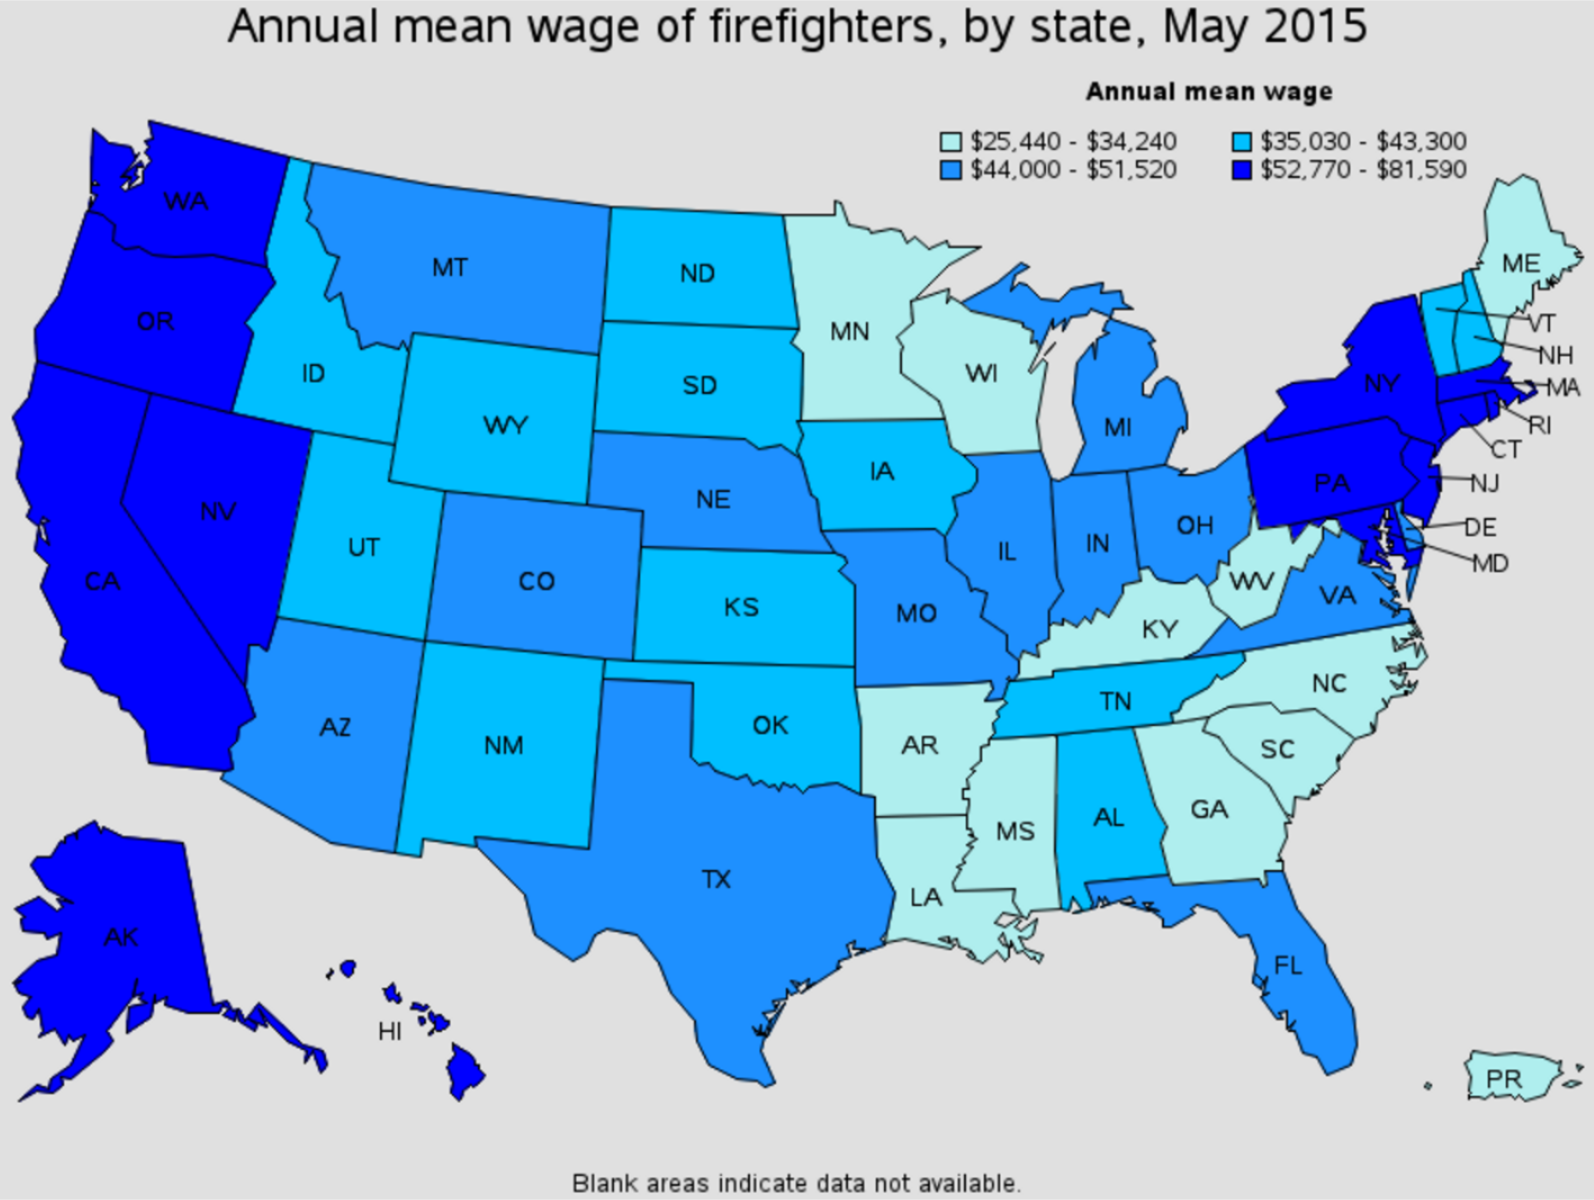 firefighter average salary by state Thorne Bay Alaska